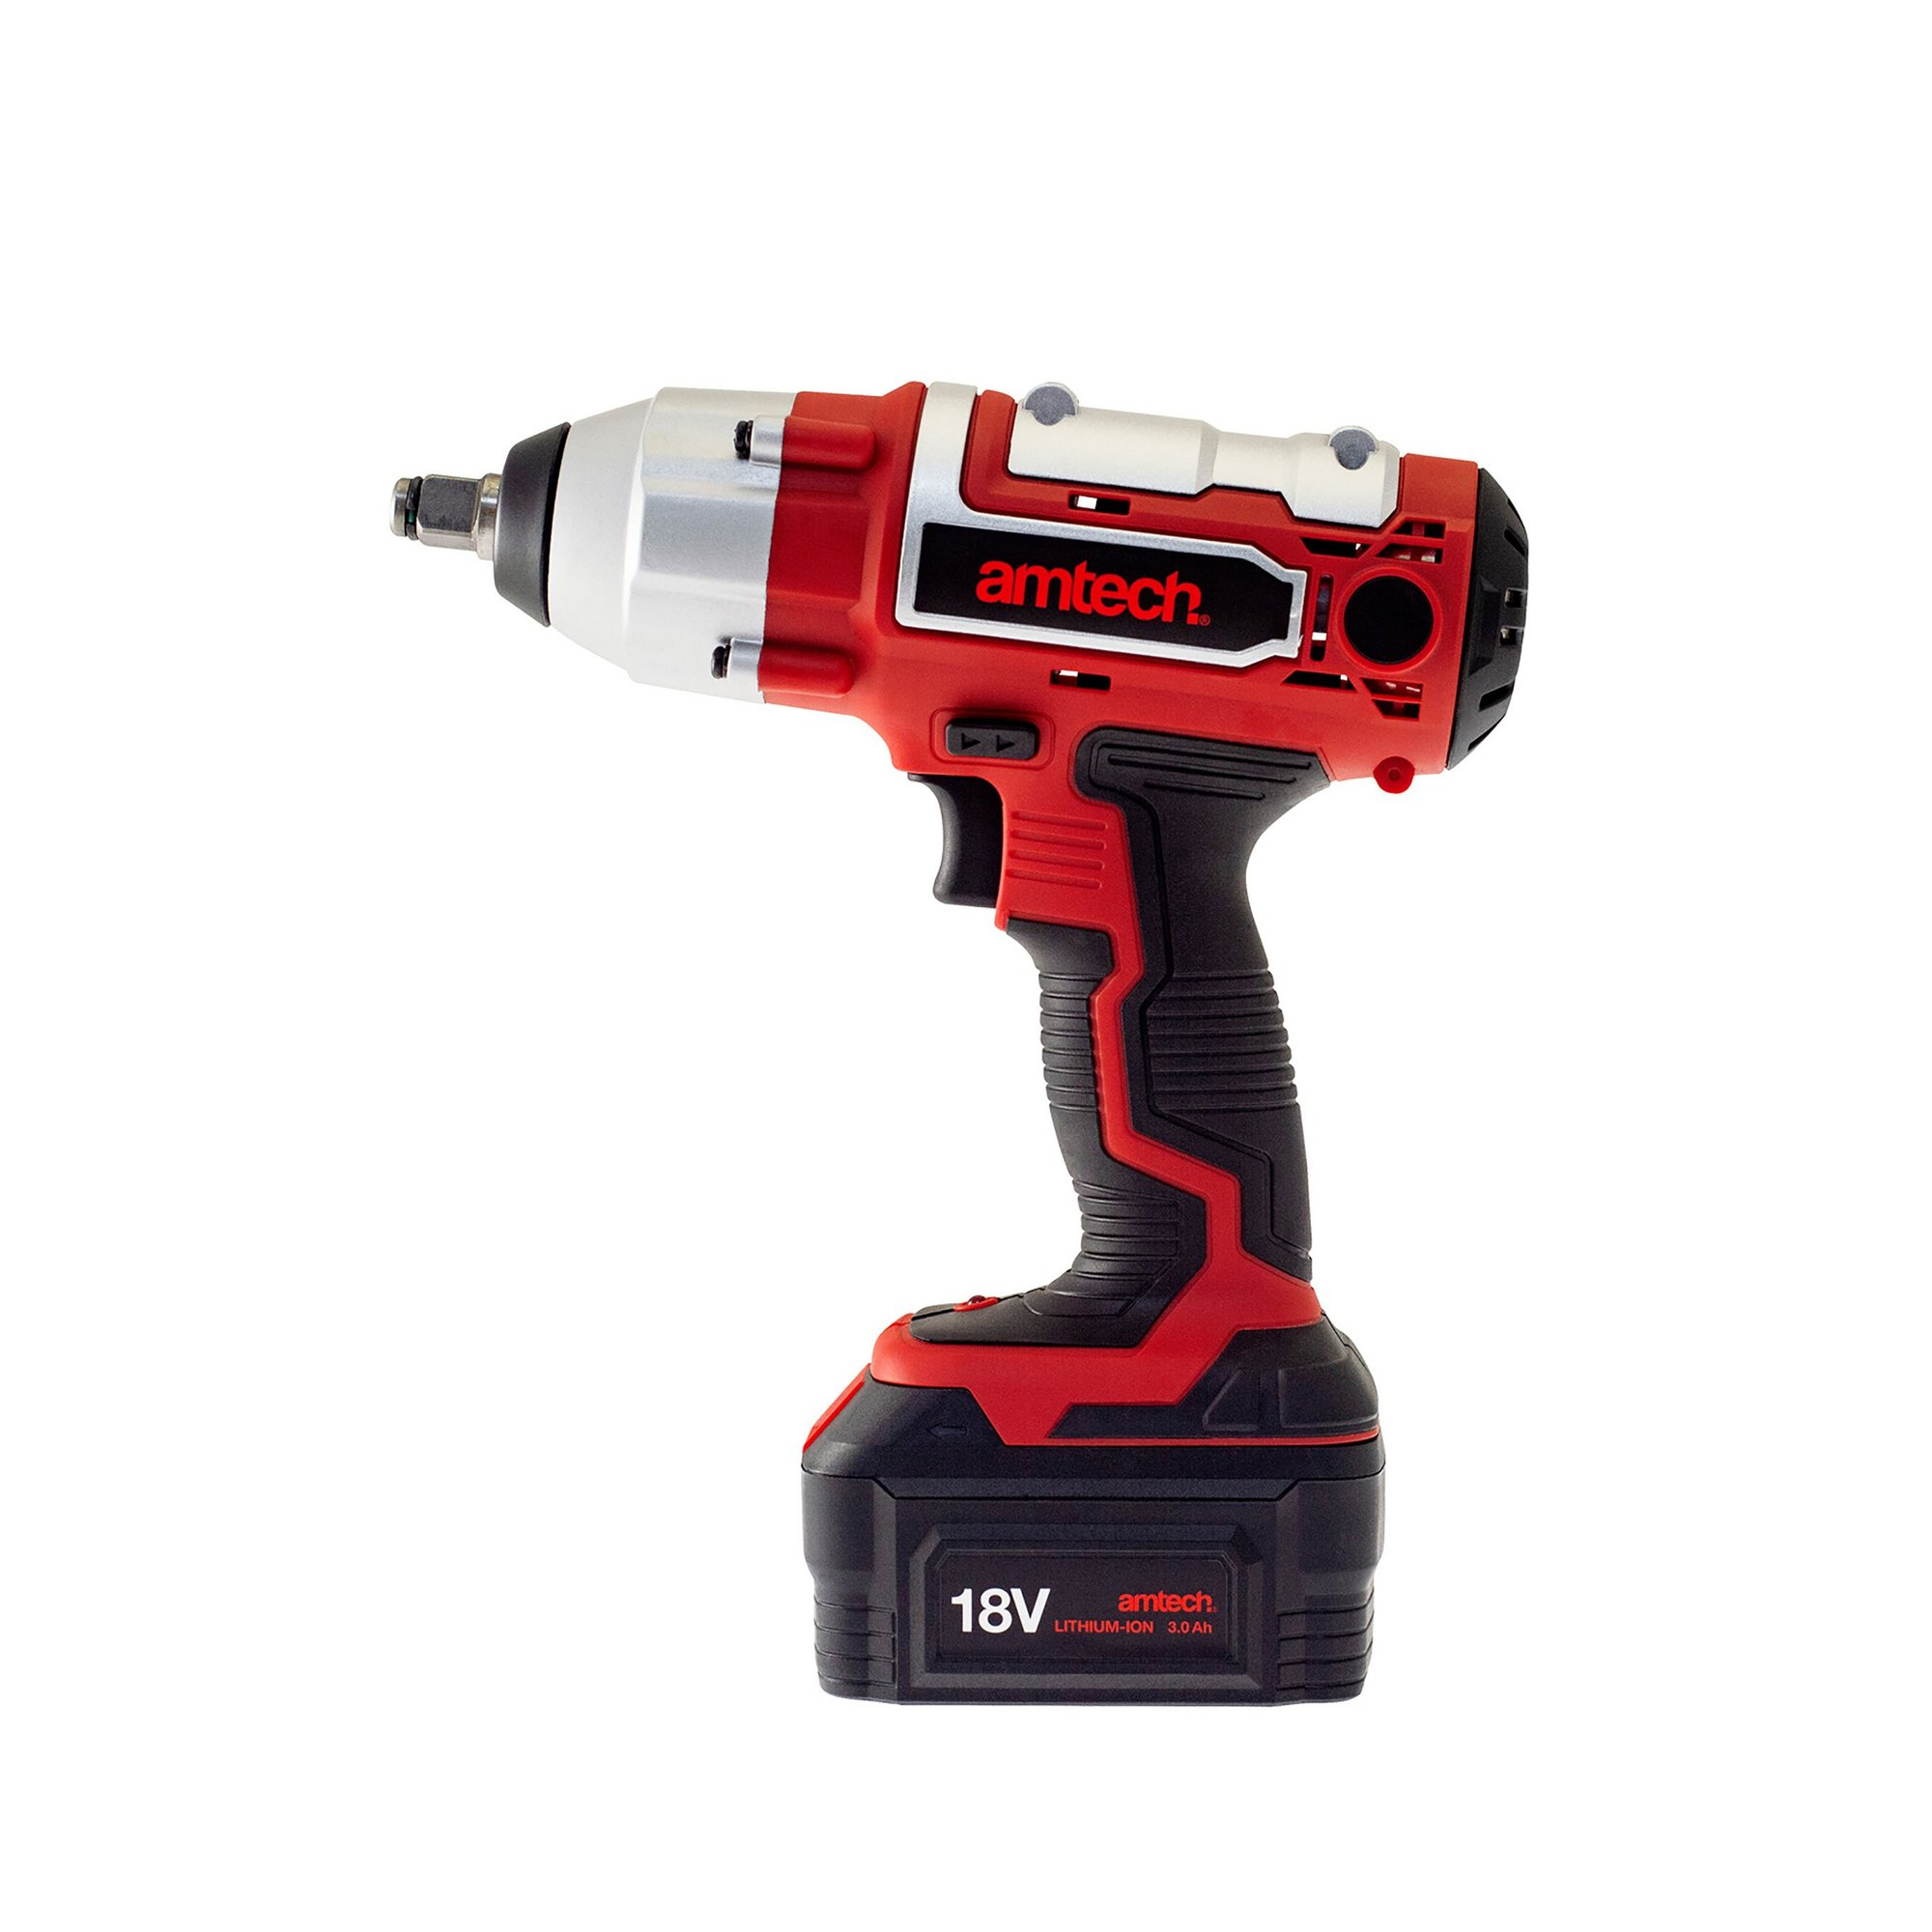 Image of 18v 3Ah Li-Ion Cordless 1/2 inch Impact Wrench